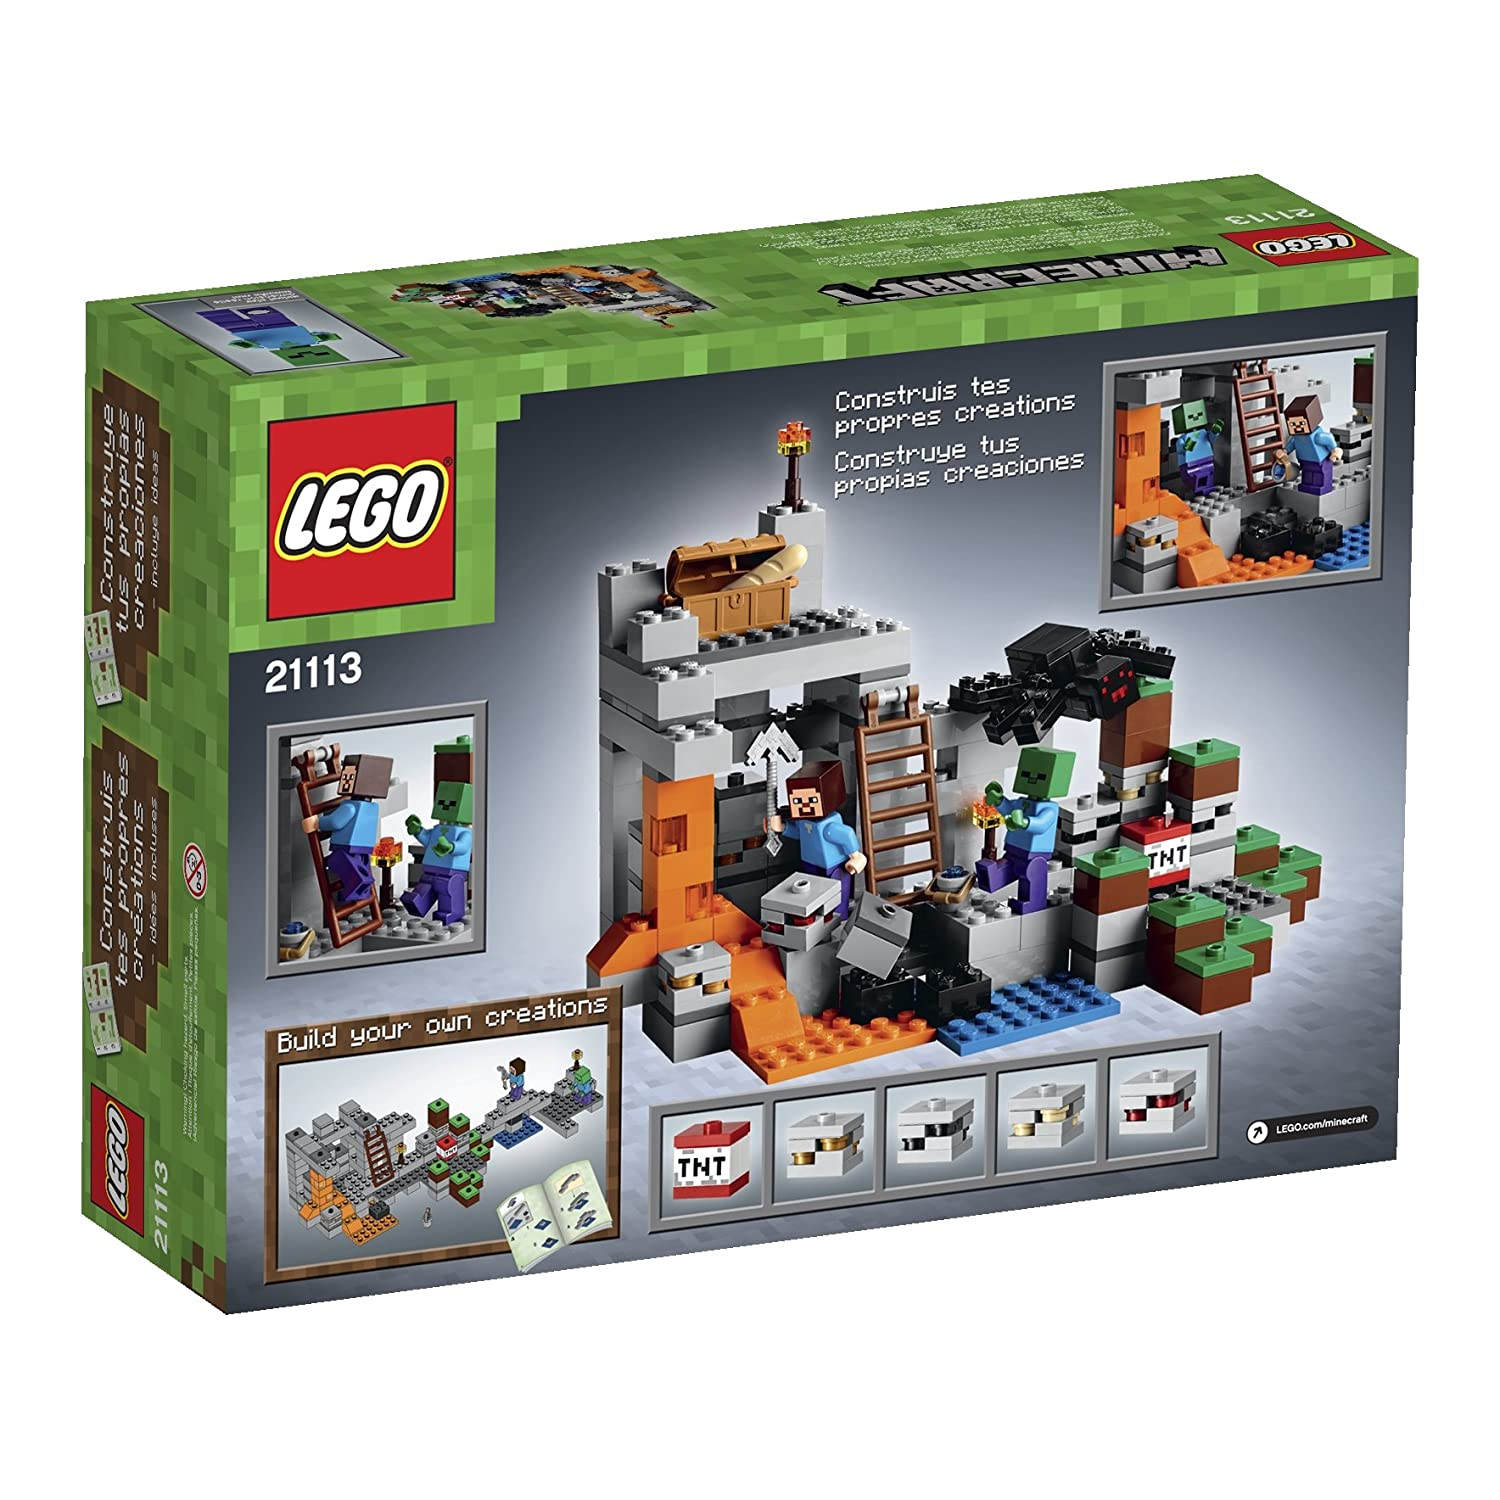 Lego 21113 the cave playset with minecraft hostile mobs by unknown amazon de spielzeug